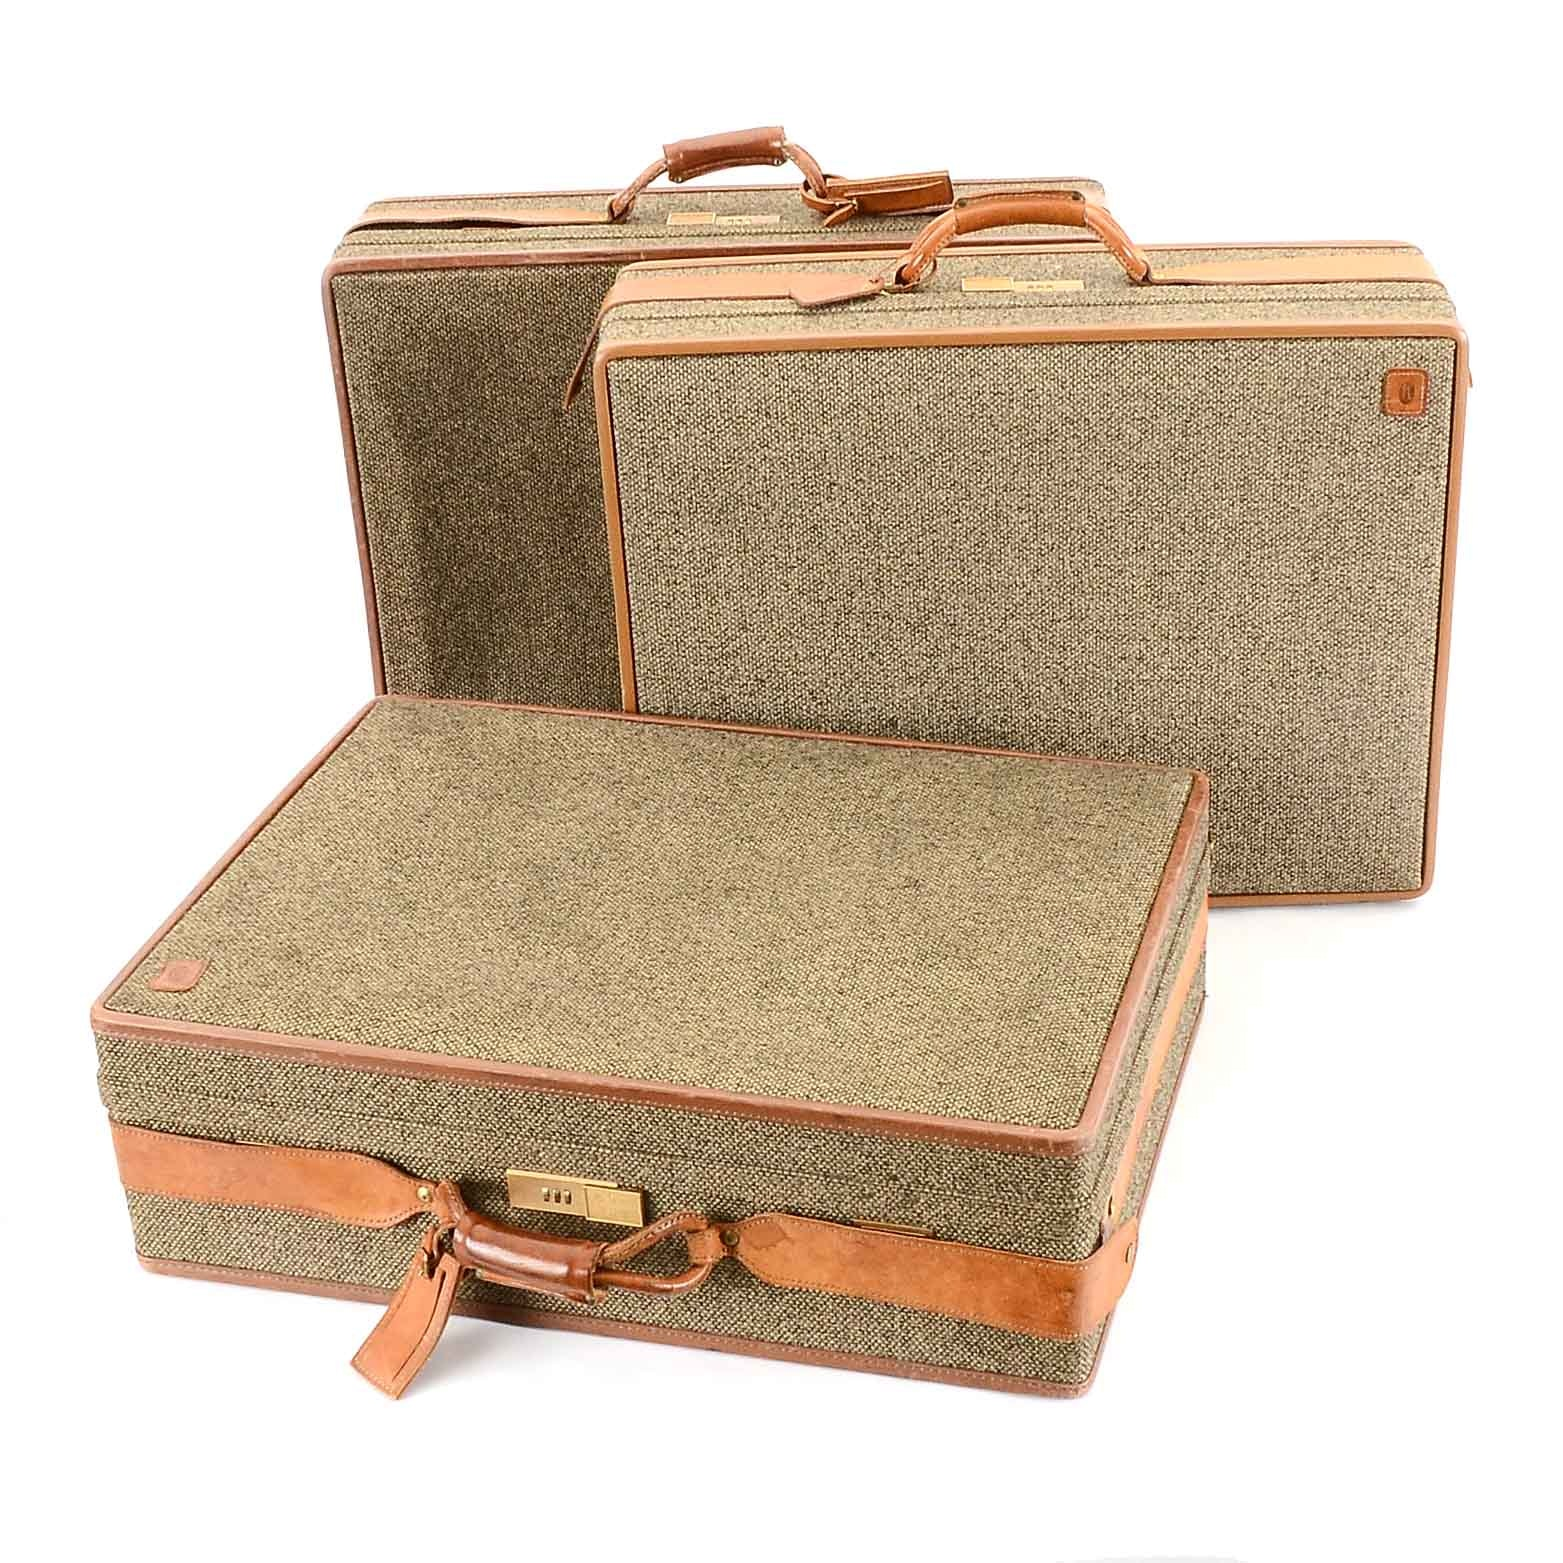 Group of Vintage Hartmann Suitcases